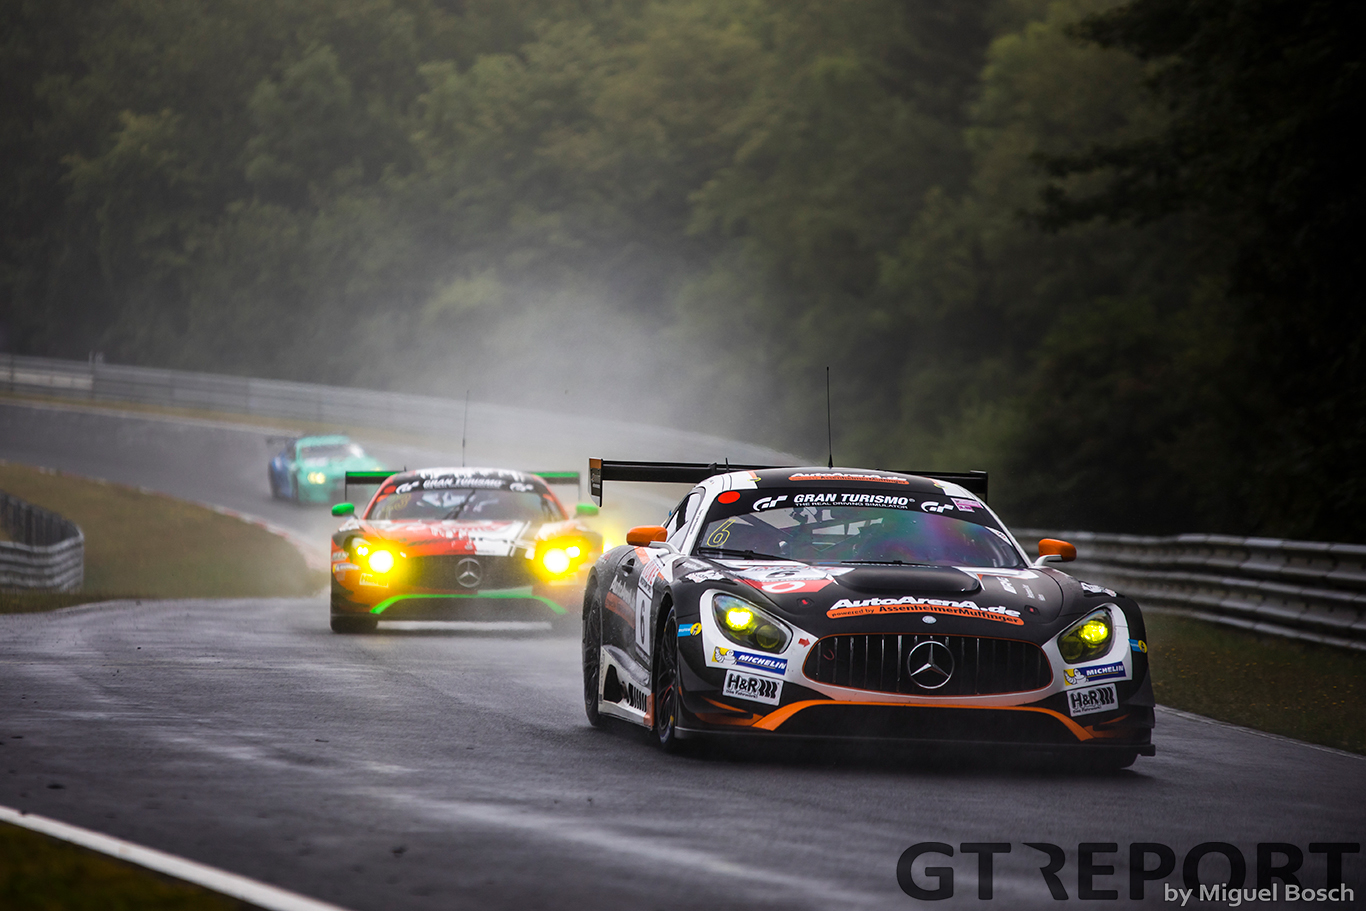 VLN5 race report: Black Falcon takes rare 1-2 victory in 6-hour race